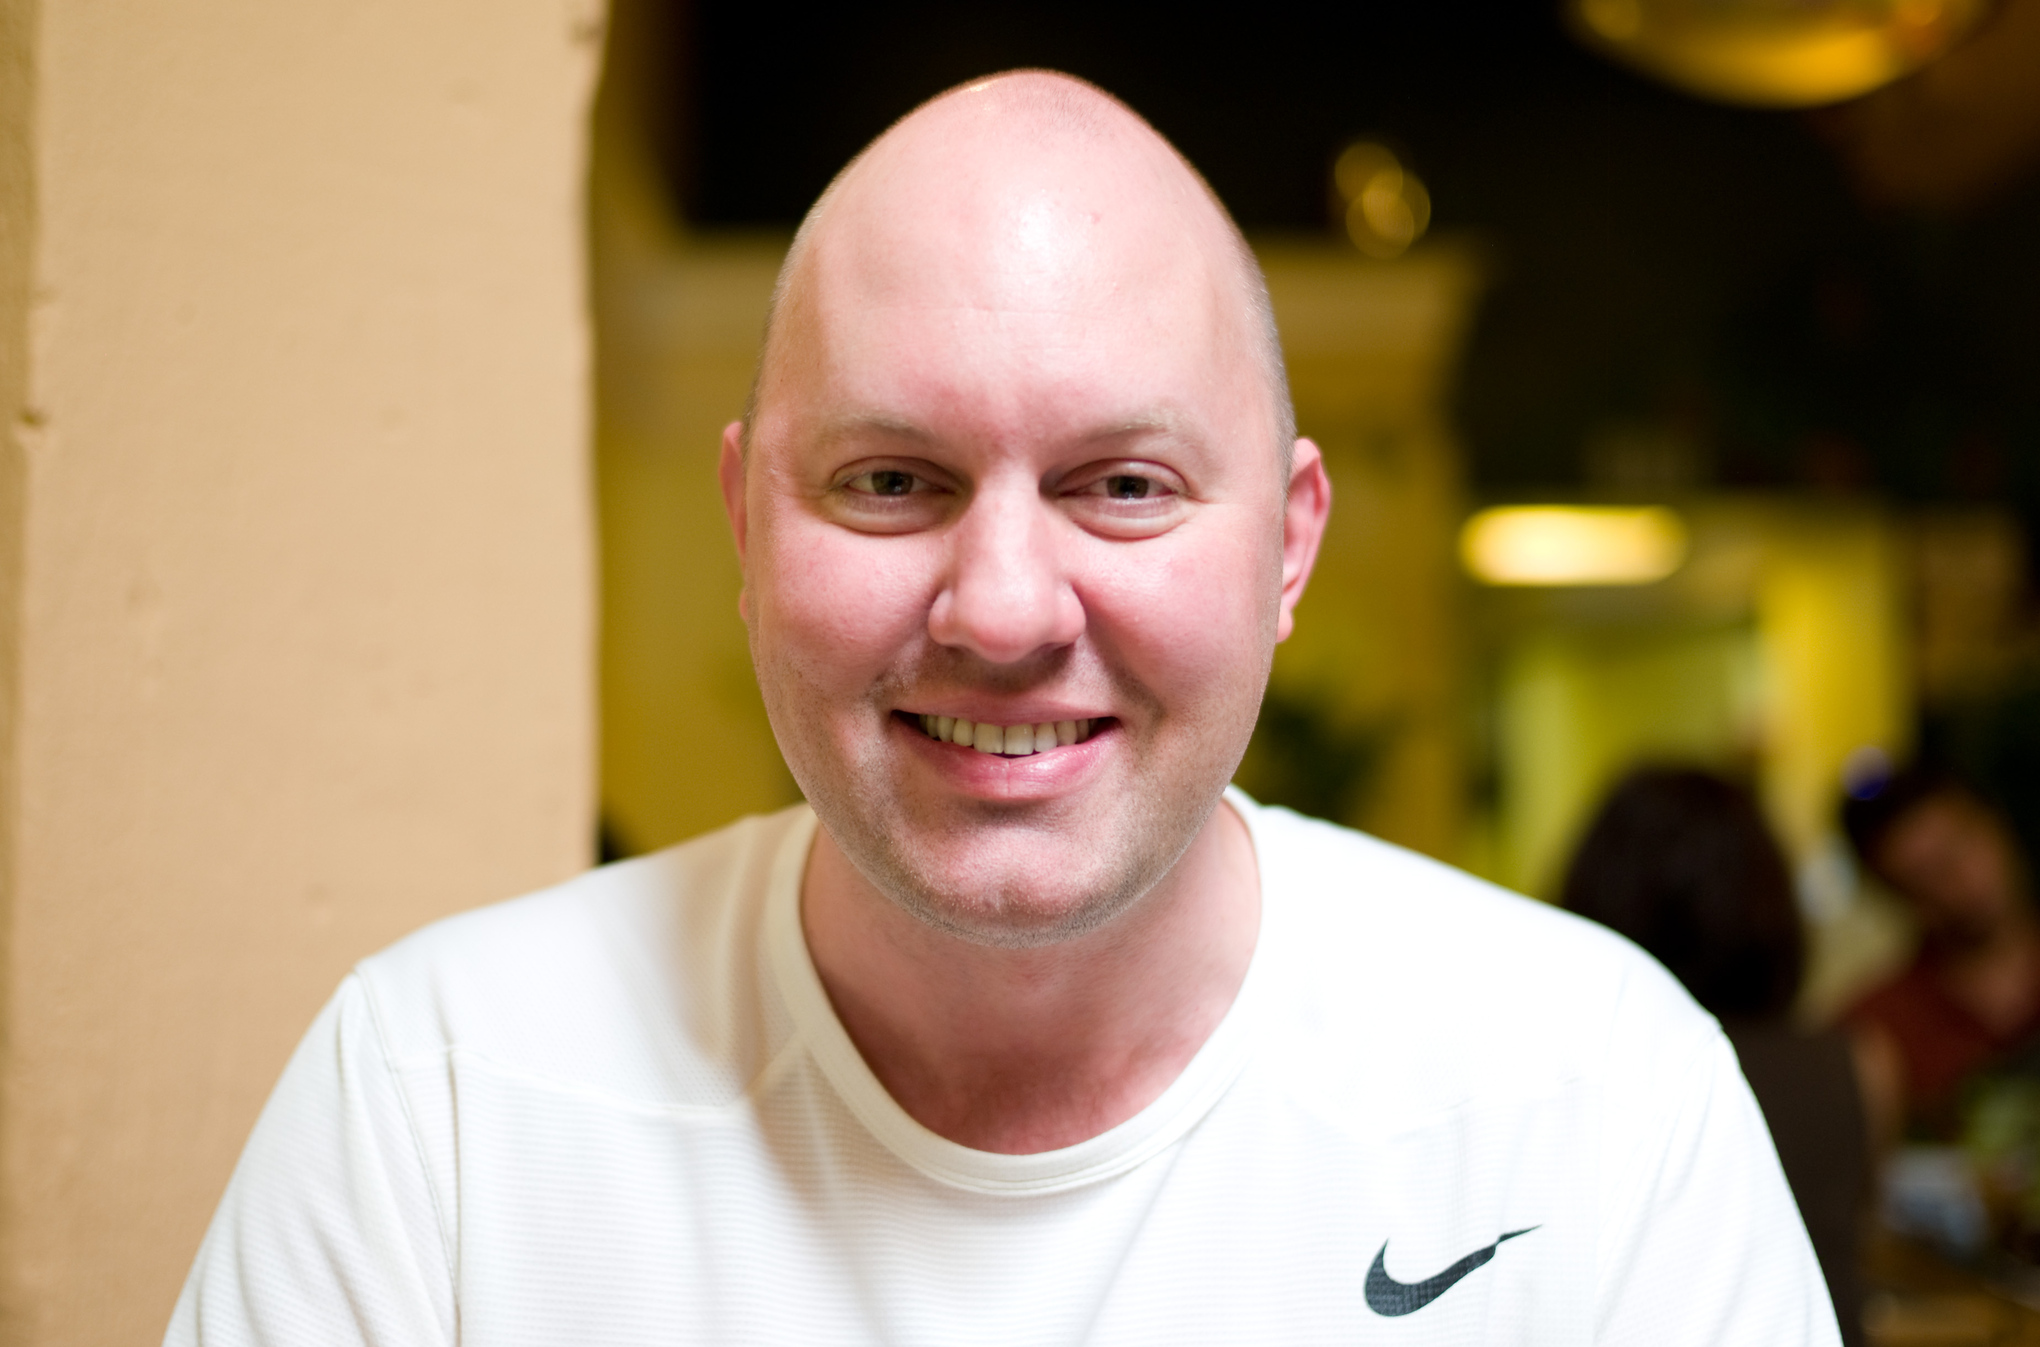 The IPO is dying. Marc Andreessen explains why.